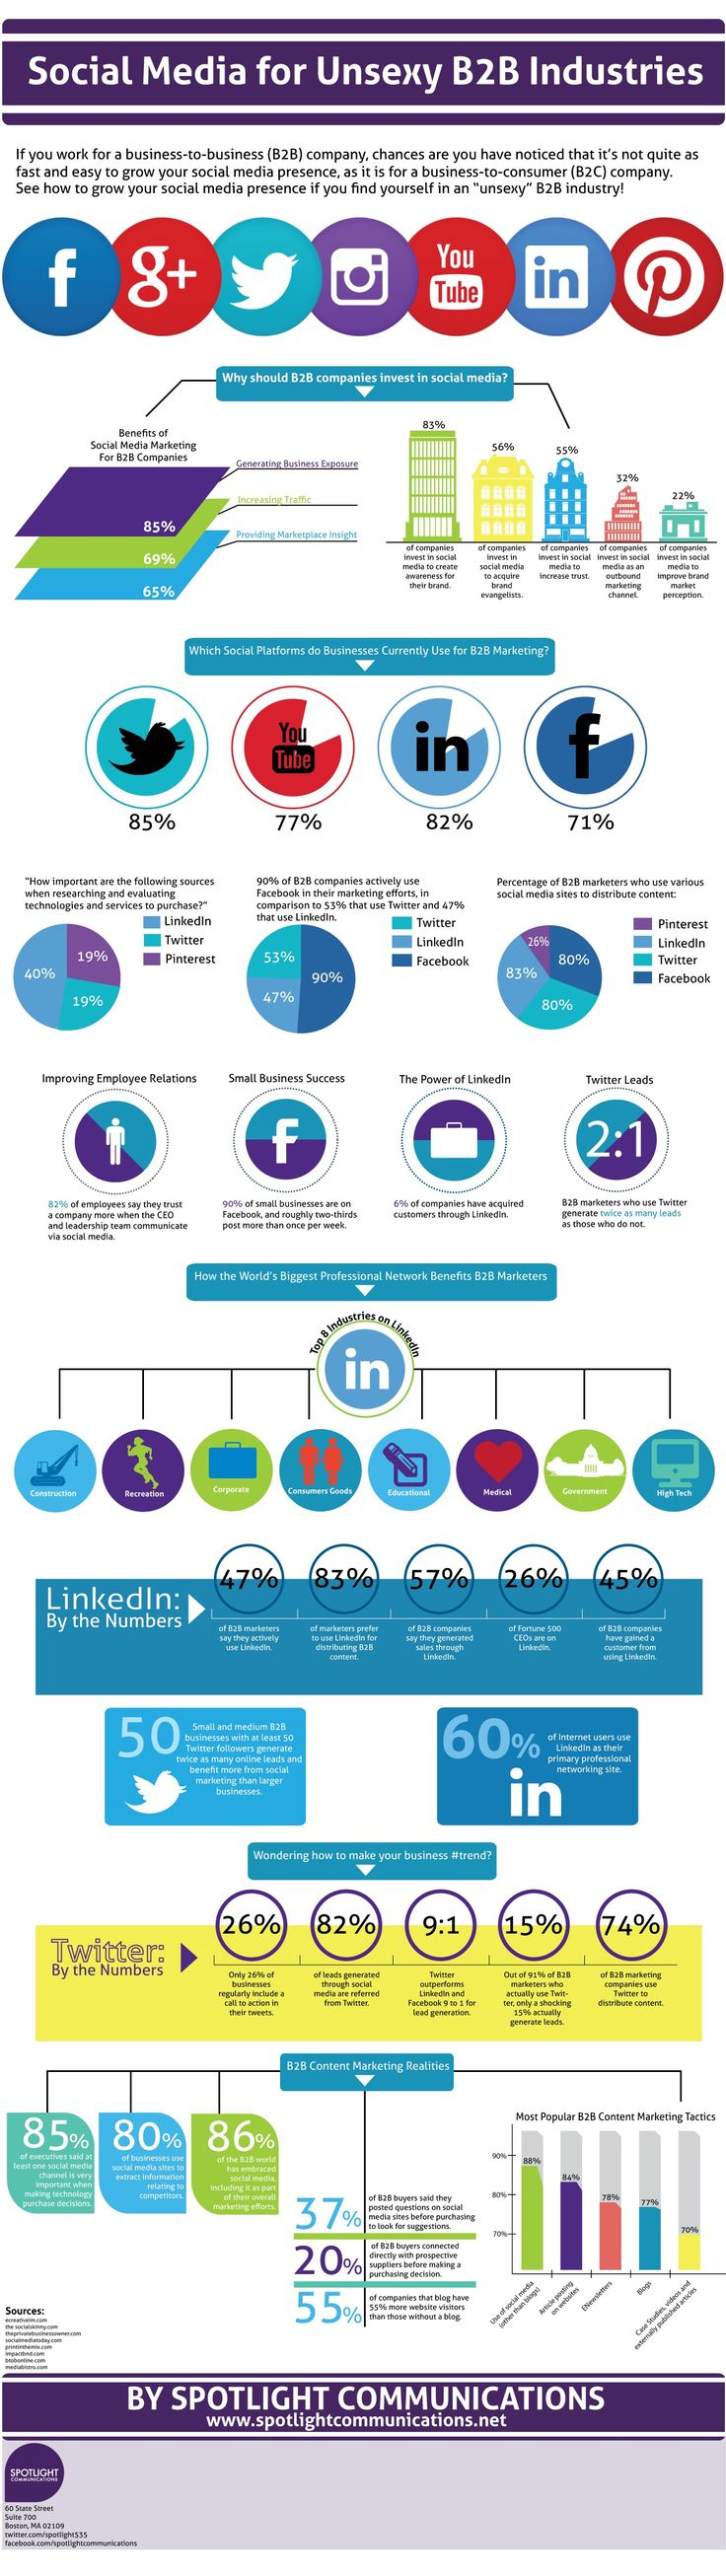 The Best Social Networks for B2B Companies [INFOGRAPHIC] #SocialMedia #infographic